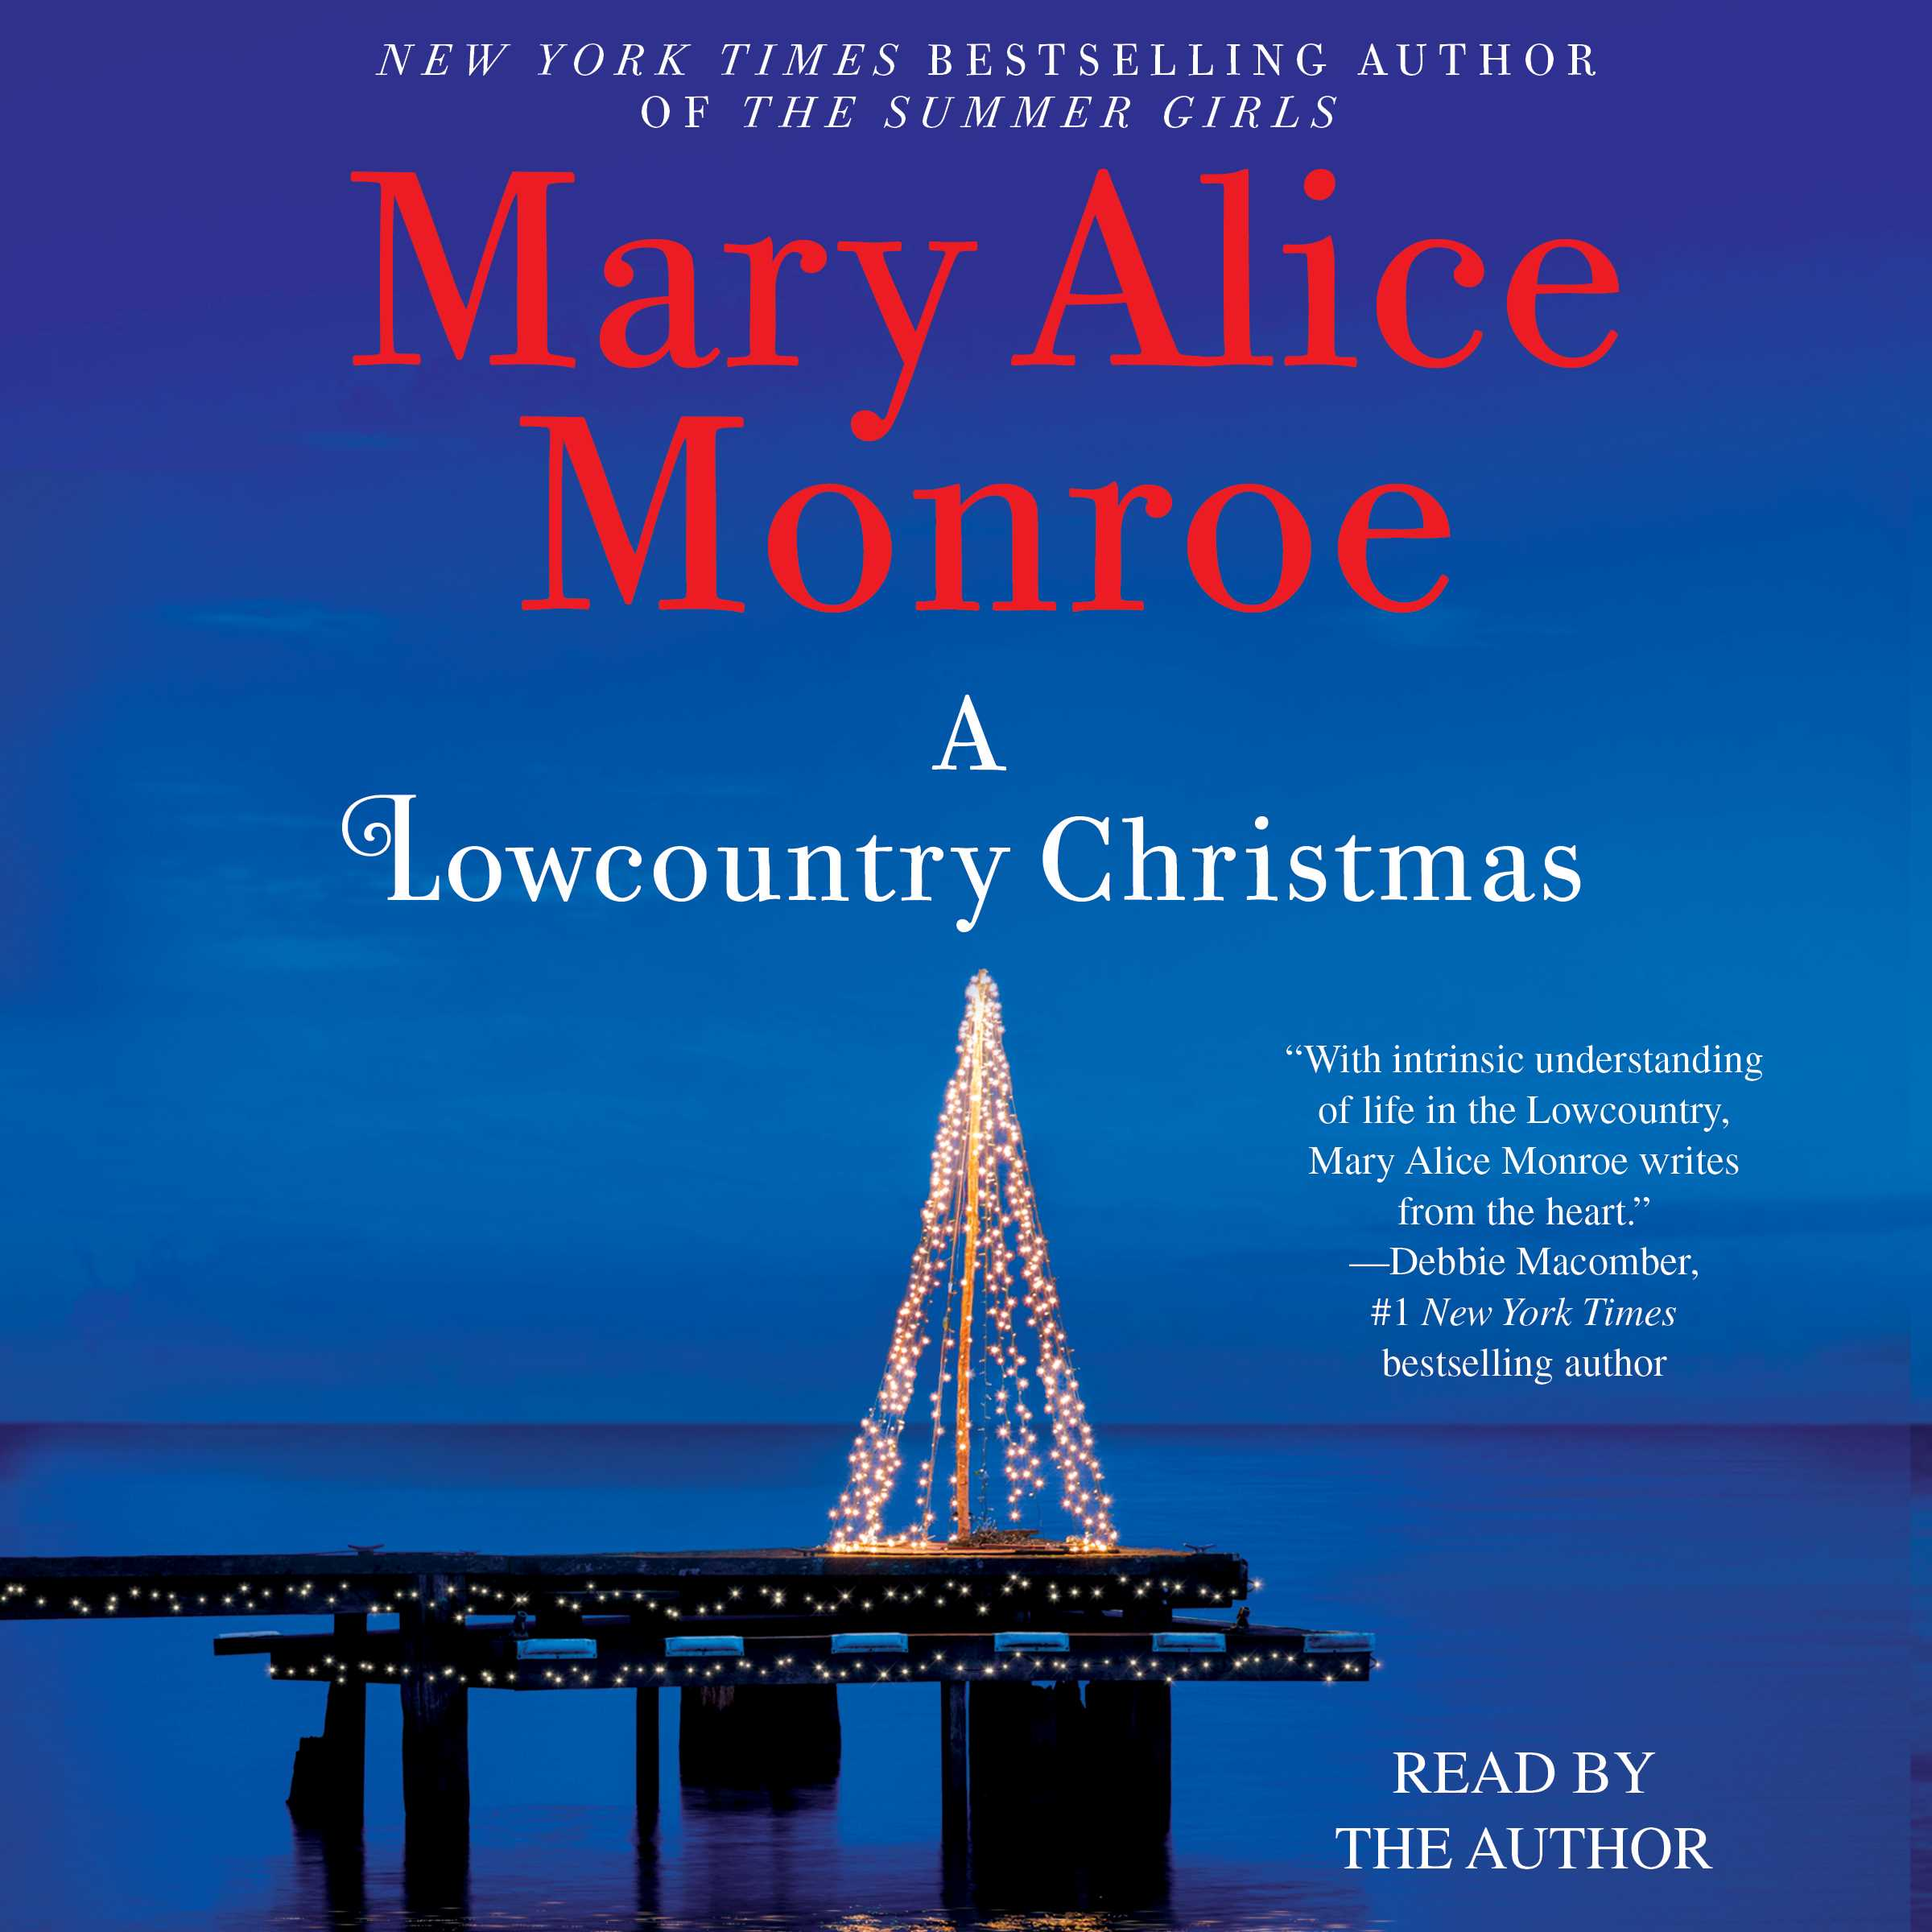 A lowcountry christmas 9781442394179 hr